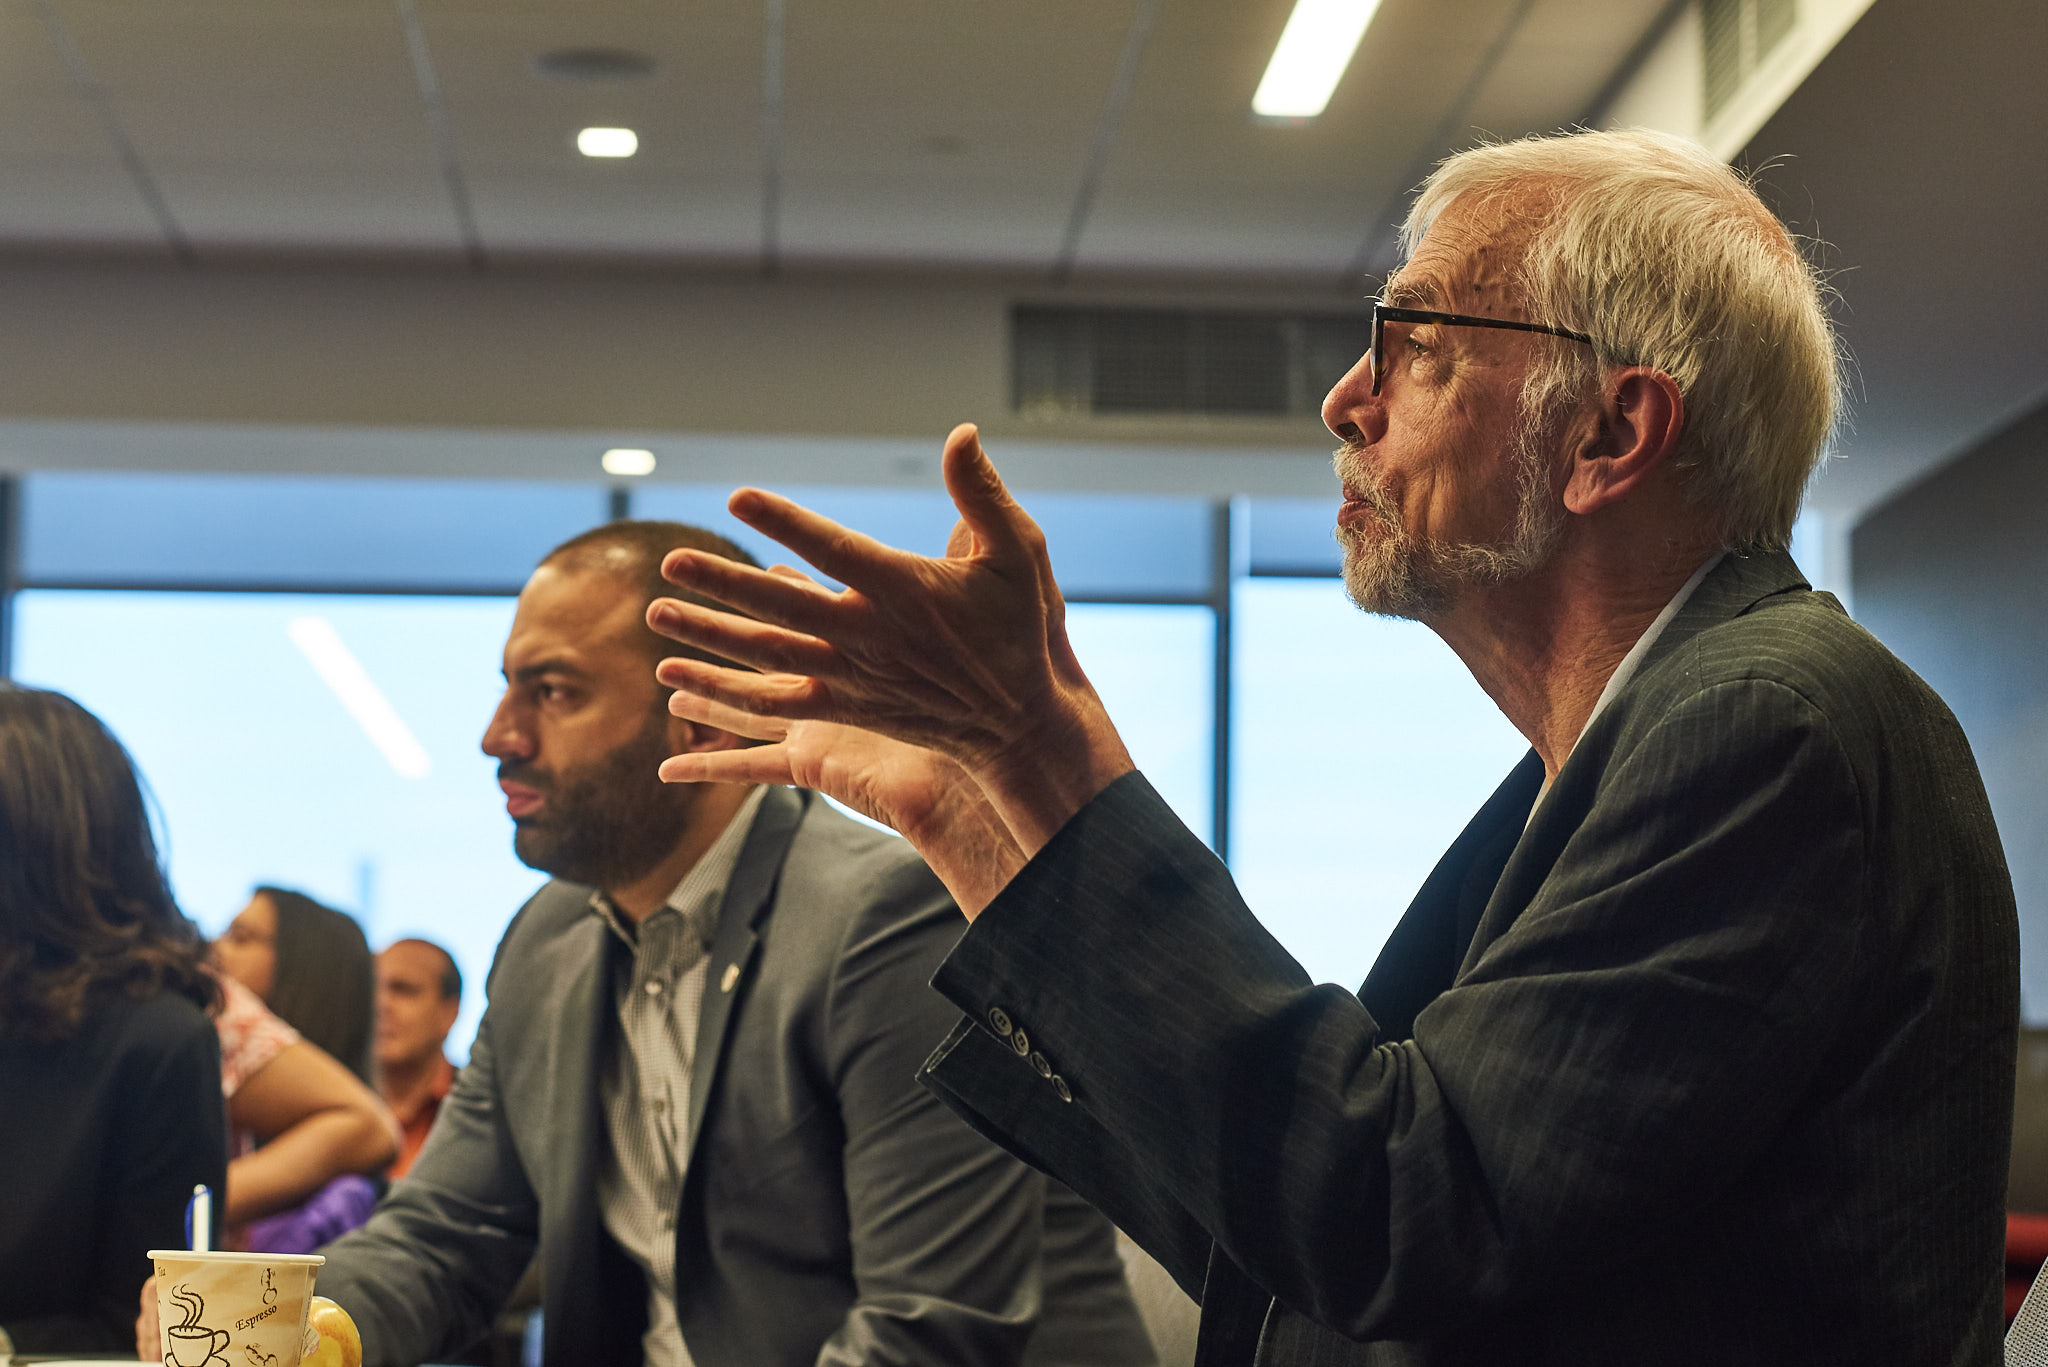 Nicholas Freudenberg, Director, CUNY Urban Food Policy Institute, in discussion with store operators and representatives from city government, philanthropy and nonprofit organizations addressing the food needs of New Yorkers. photo credit:  Reeve Jolliffe